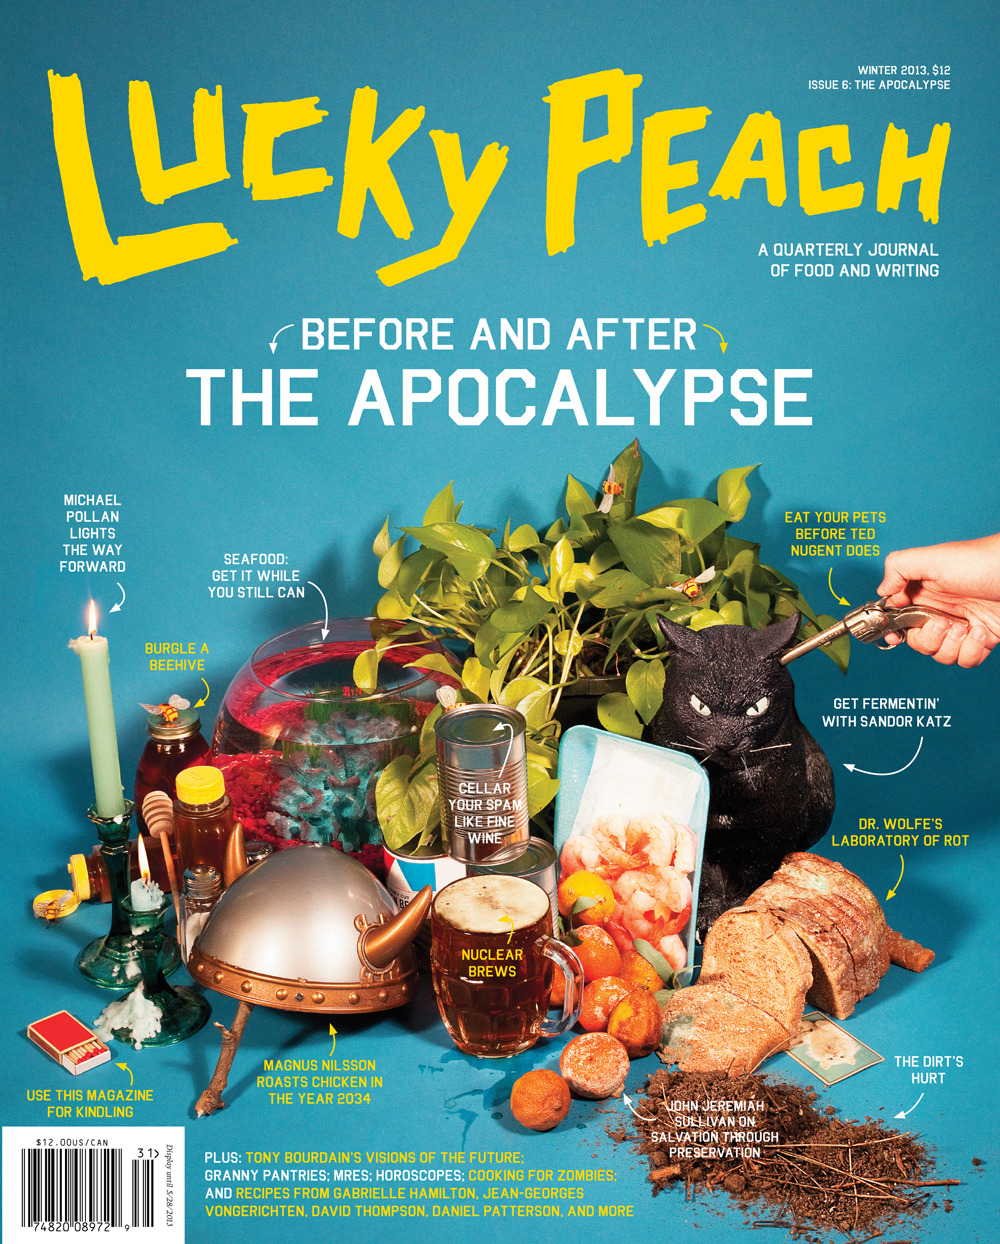 luckypeach:  Here's the cover of the next issue. It'll be arriving in mailboxes and bookstores over the next couple weeks. Inside you'll find a massive interview with a little-known writer named Michael Pollan, a comic collaboration from Tony Bourdain and Tim Lane, stories of werebeavers, and all manner of strangeness and grossness you expect from us taken to apocalyptic extremes. Issues will be available at all your favorite stores that sell printed things. Or you could cop a copy direct from us here. Oh, yeah, I guess I should note: we're gonna try to tumblr here regularly, so feel free to follow. We're also on instagram and twitter. And facebook, but seriously, I do not have any idea how that thing works. pfm